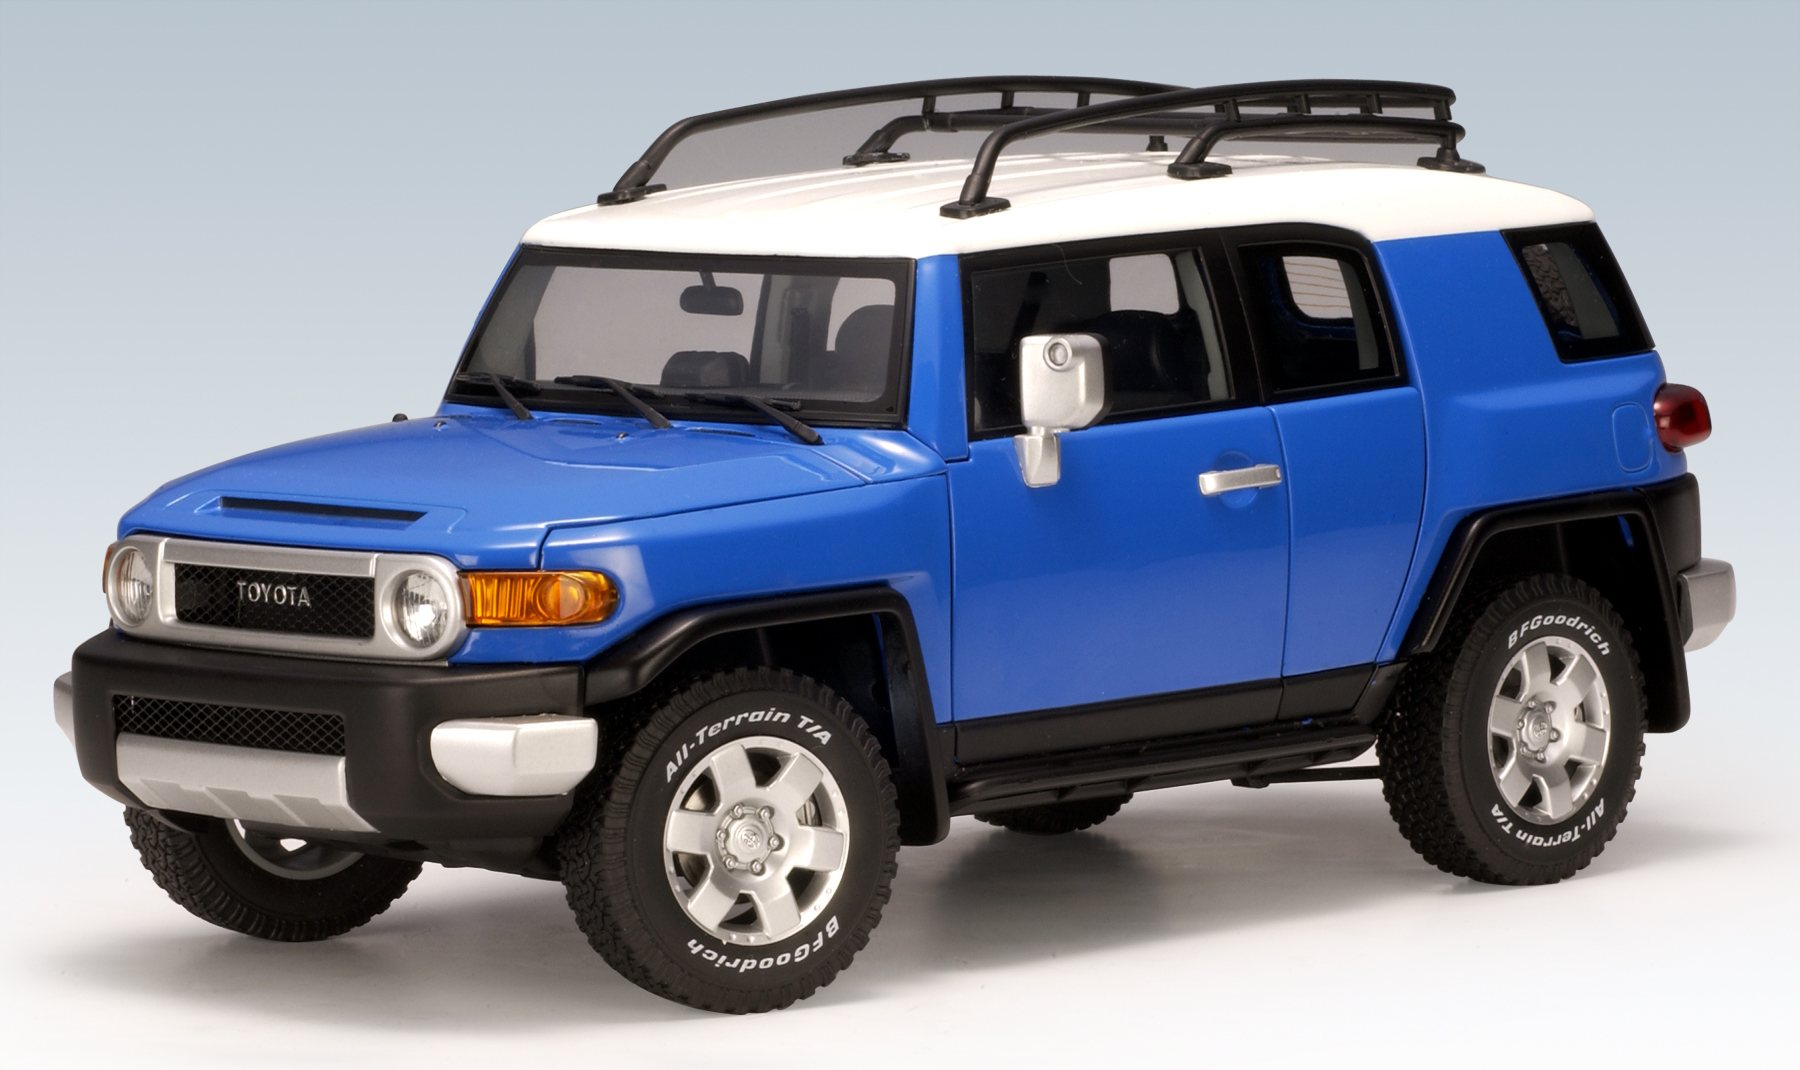 Autoart Toyota Fj Cruiser Blue 78855 In 1 18 Scale